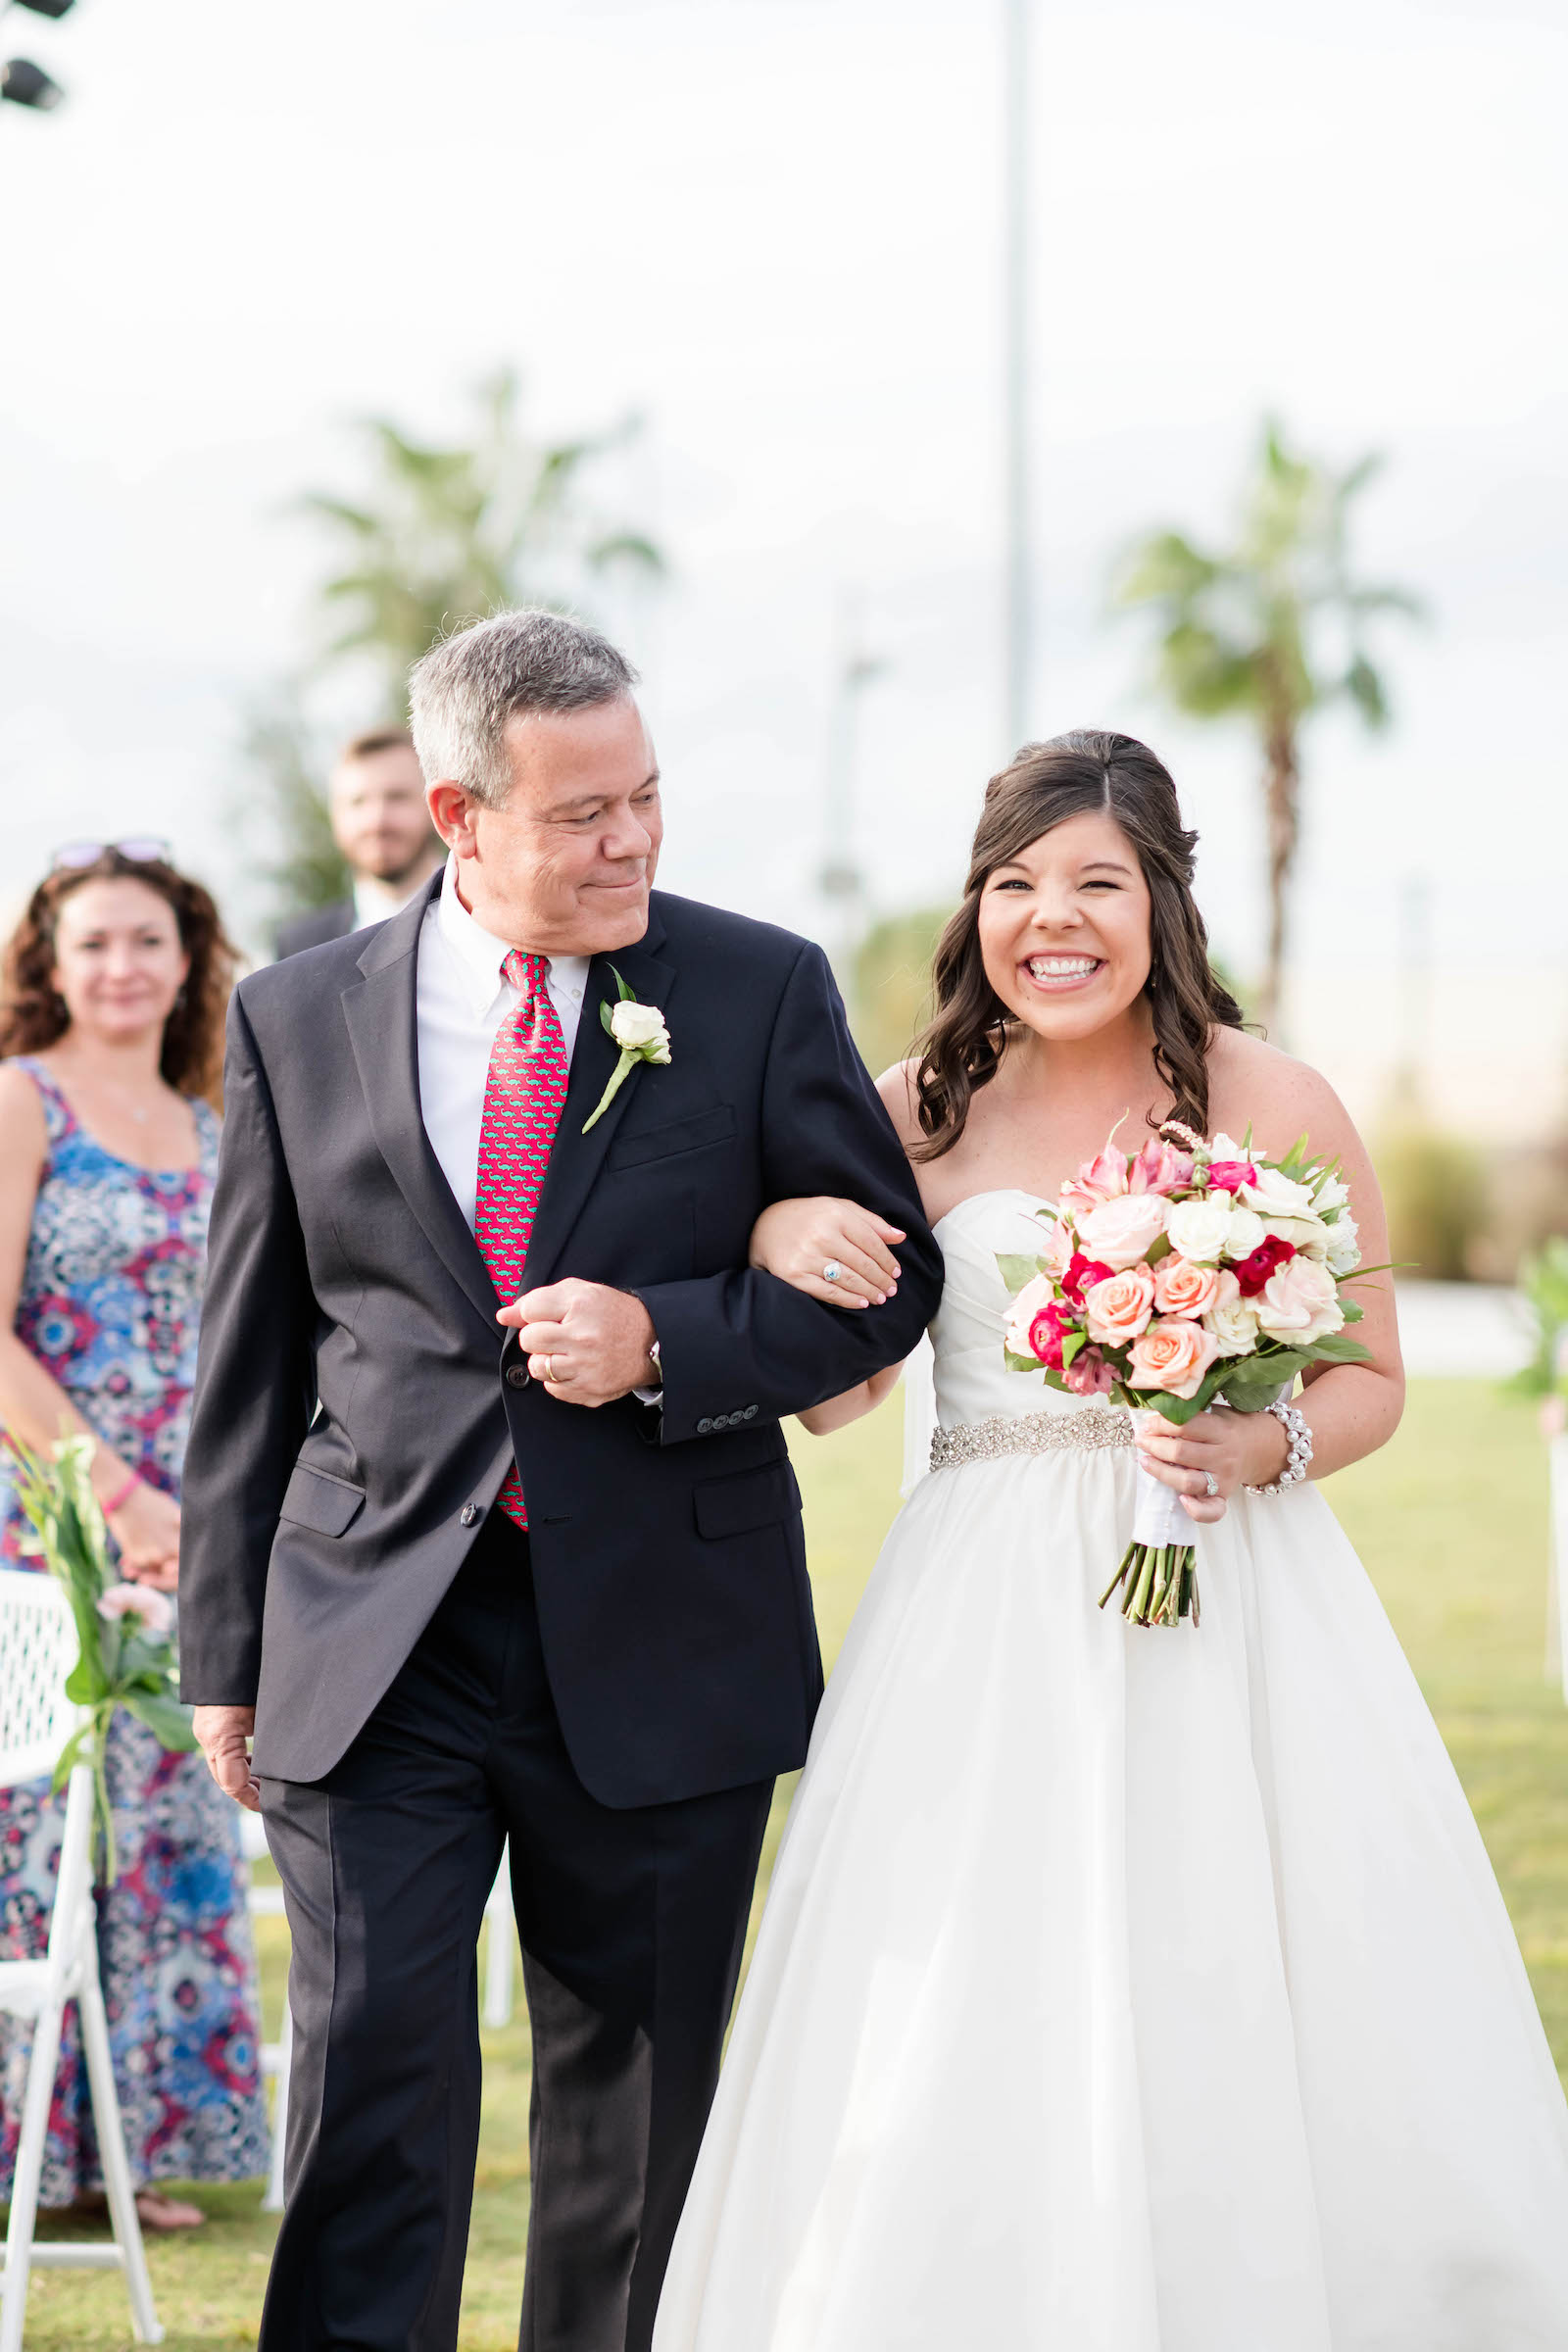 Happy Emotional Bride Walking Down the Wedding Ceremony Aisle with Father in Strapless A-Line Wedding Dress with Pink and White Roses Floral Bouquet | Tampa Bay Wedding Hair and Makeup Adore Bridal | Blogger Girl Meets Bow